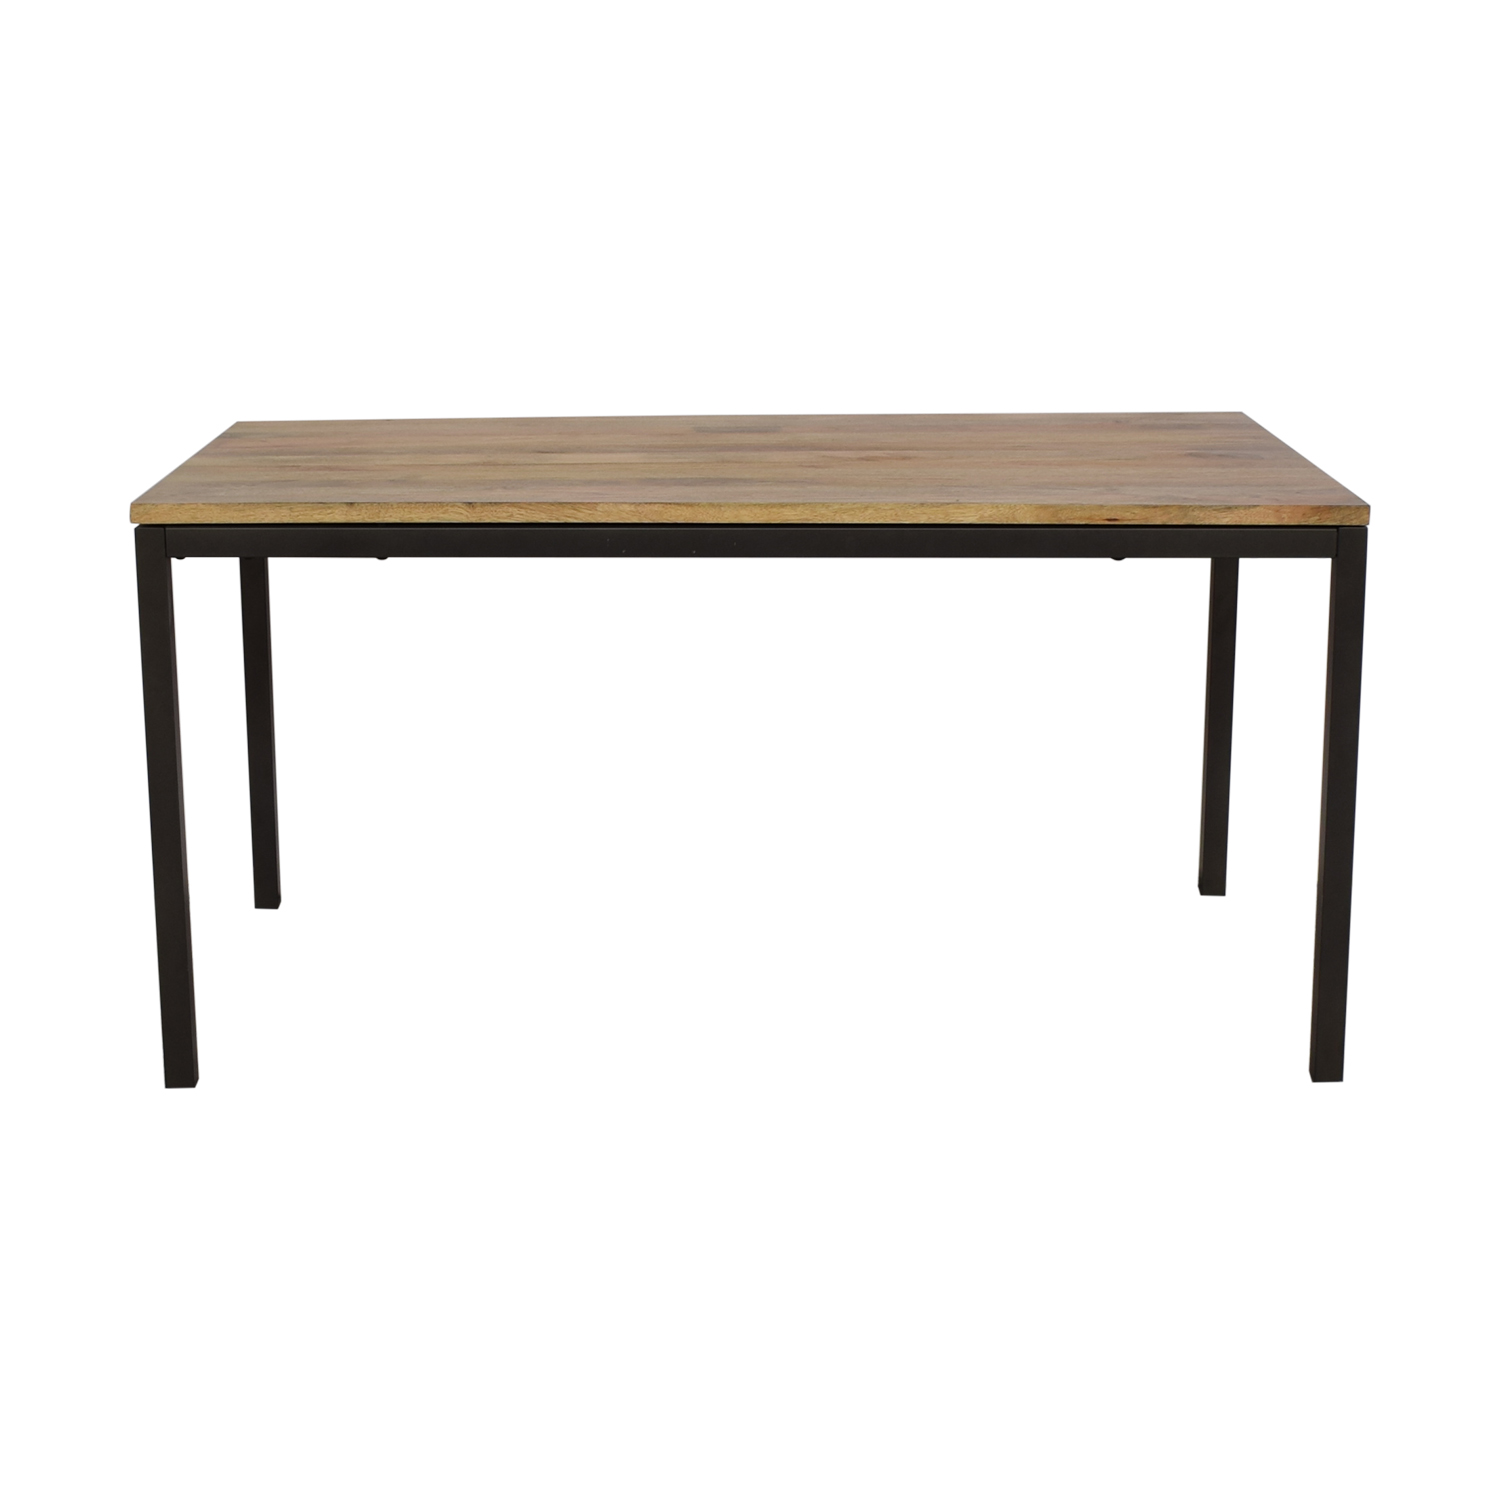 West Elm Box Frame Dining Table sale